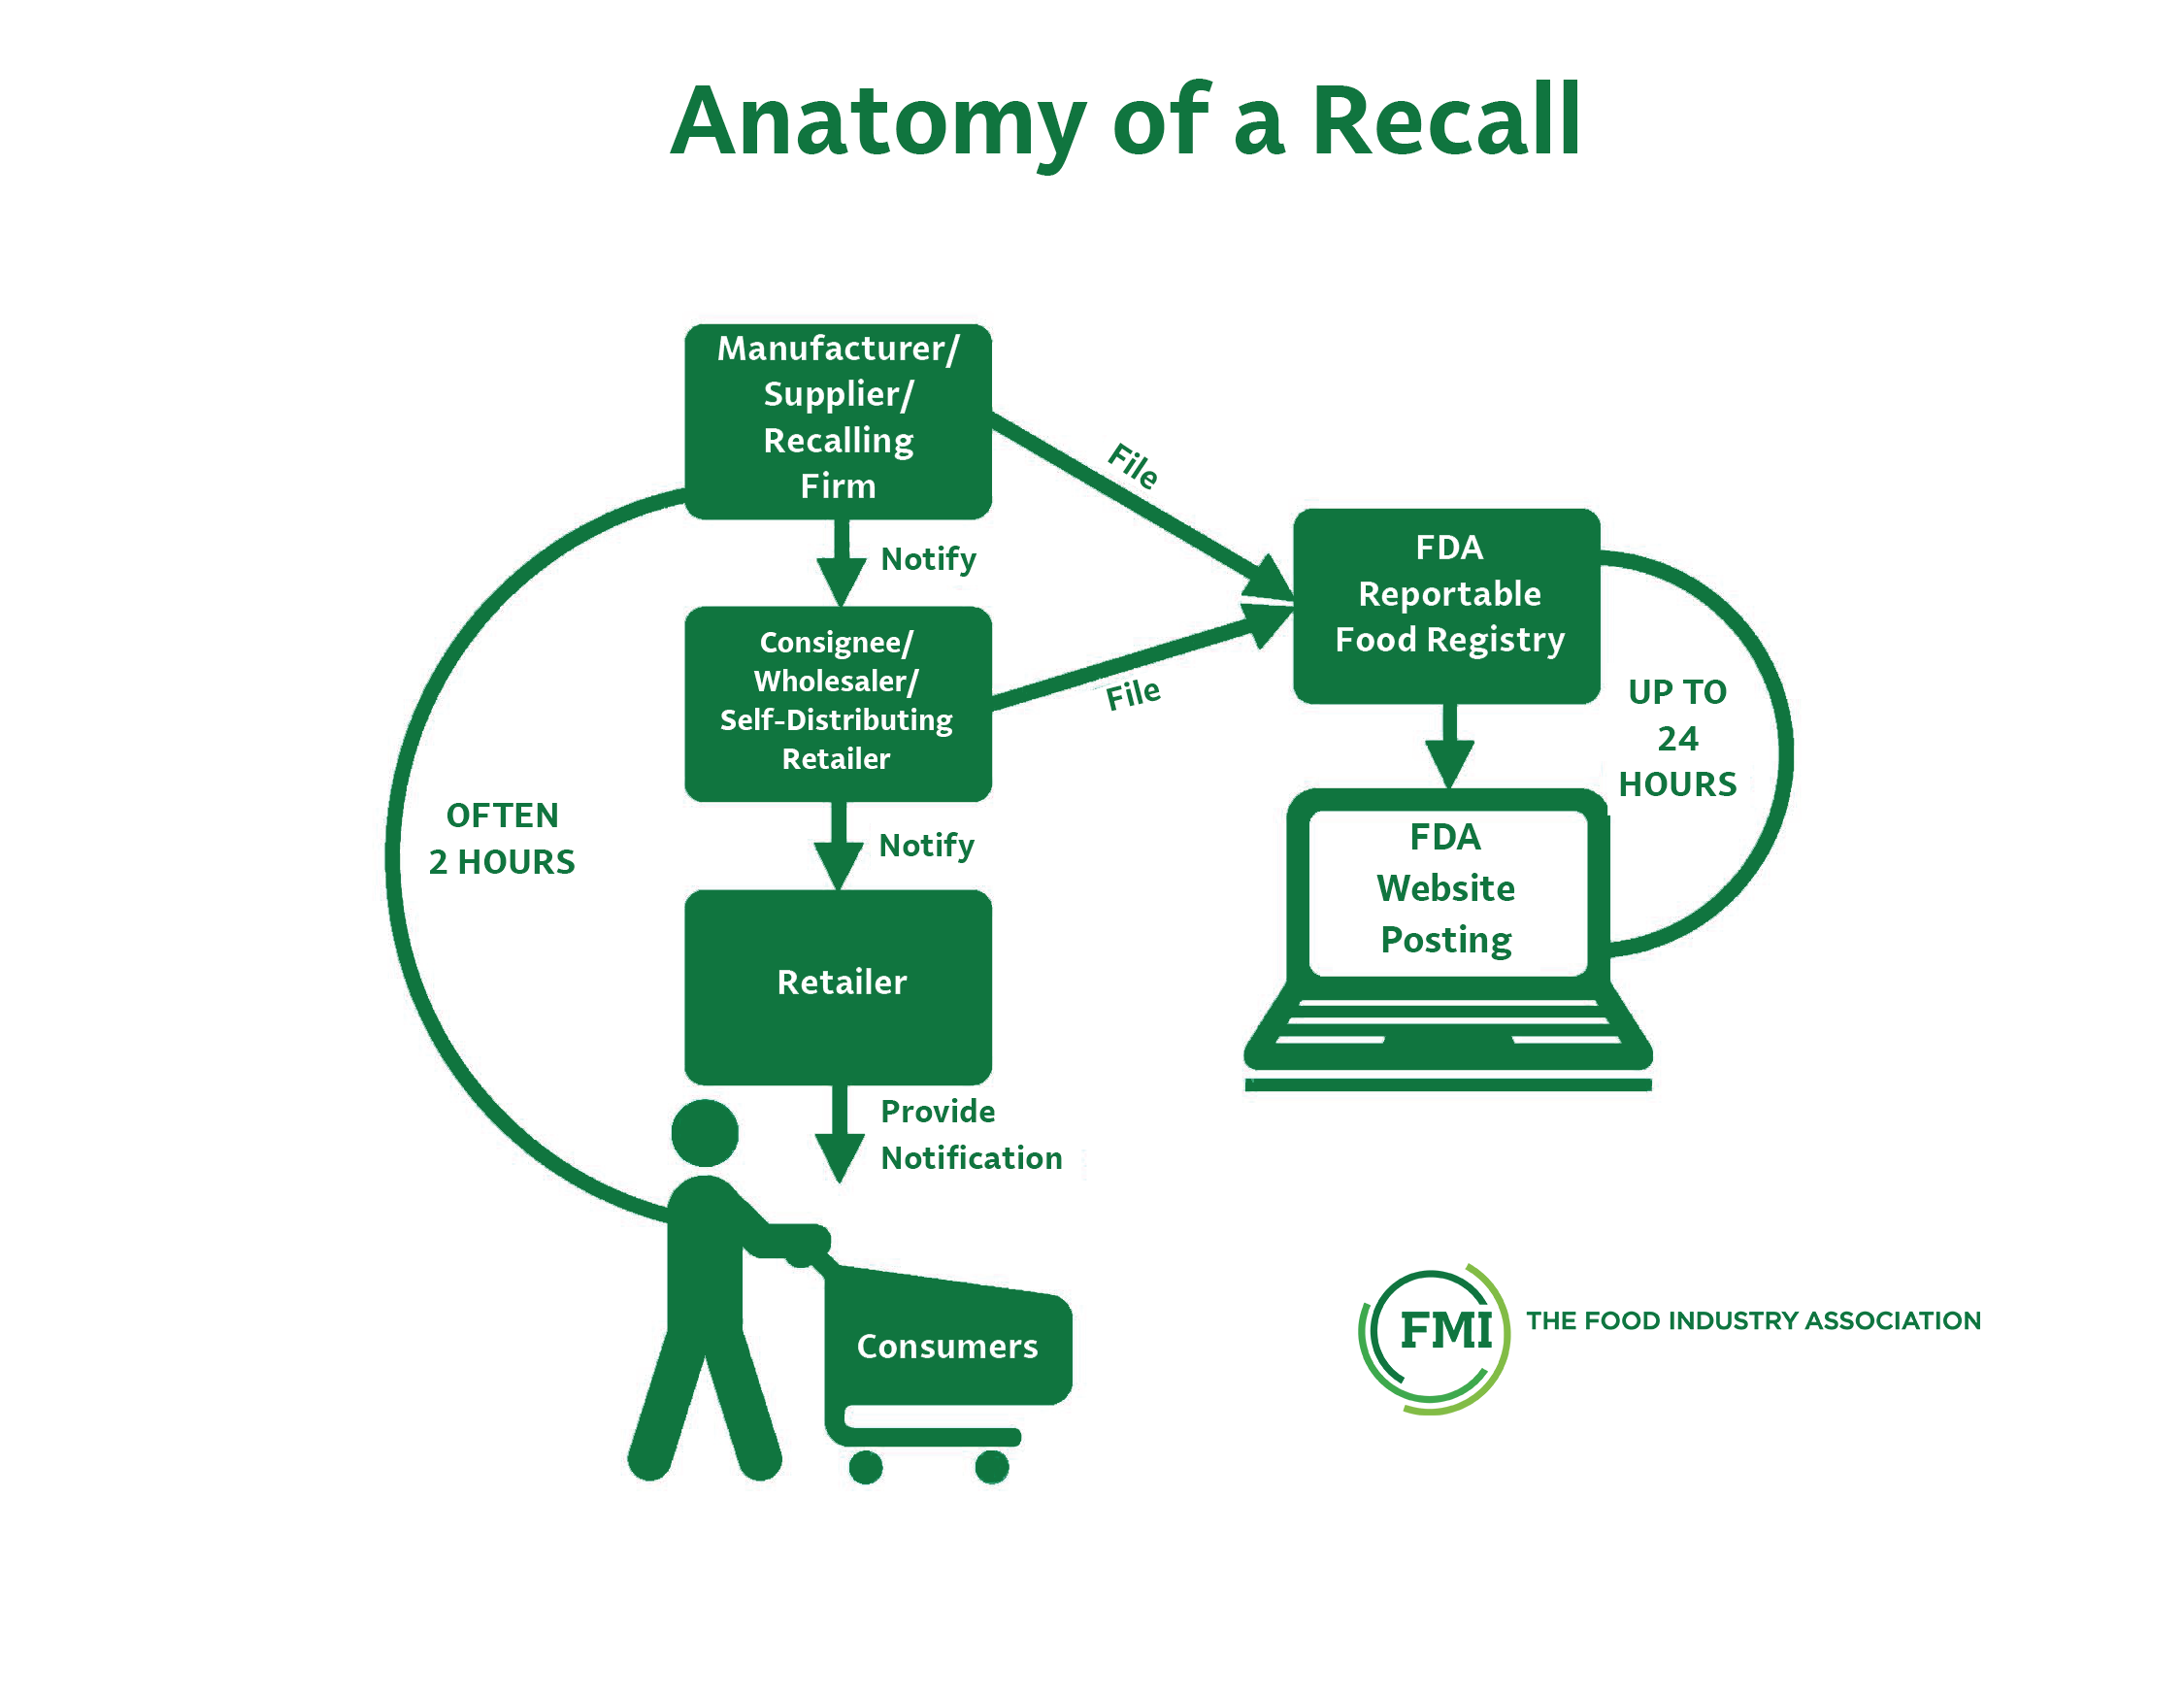 Anatomy of a Recall_FINAL